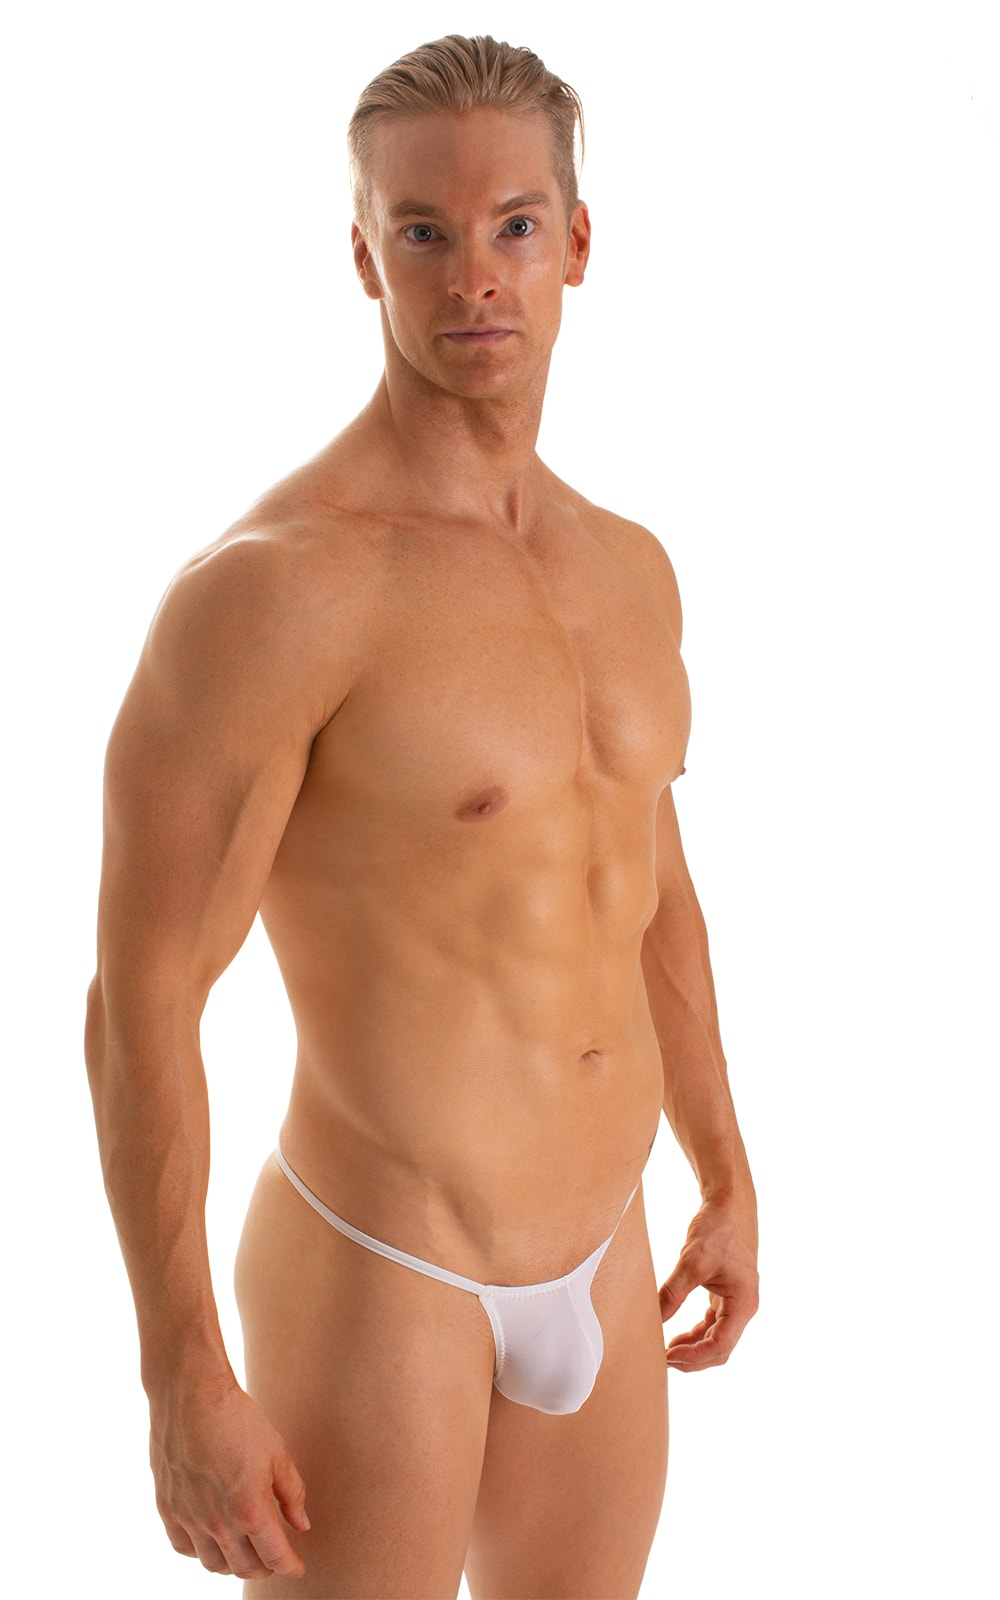 Stuffit Pouch G String Swimsuit in Super ThinSKINZ White 1